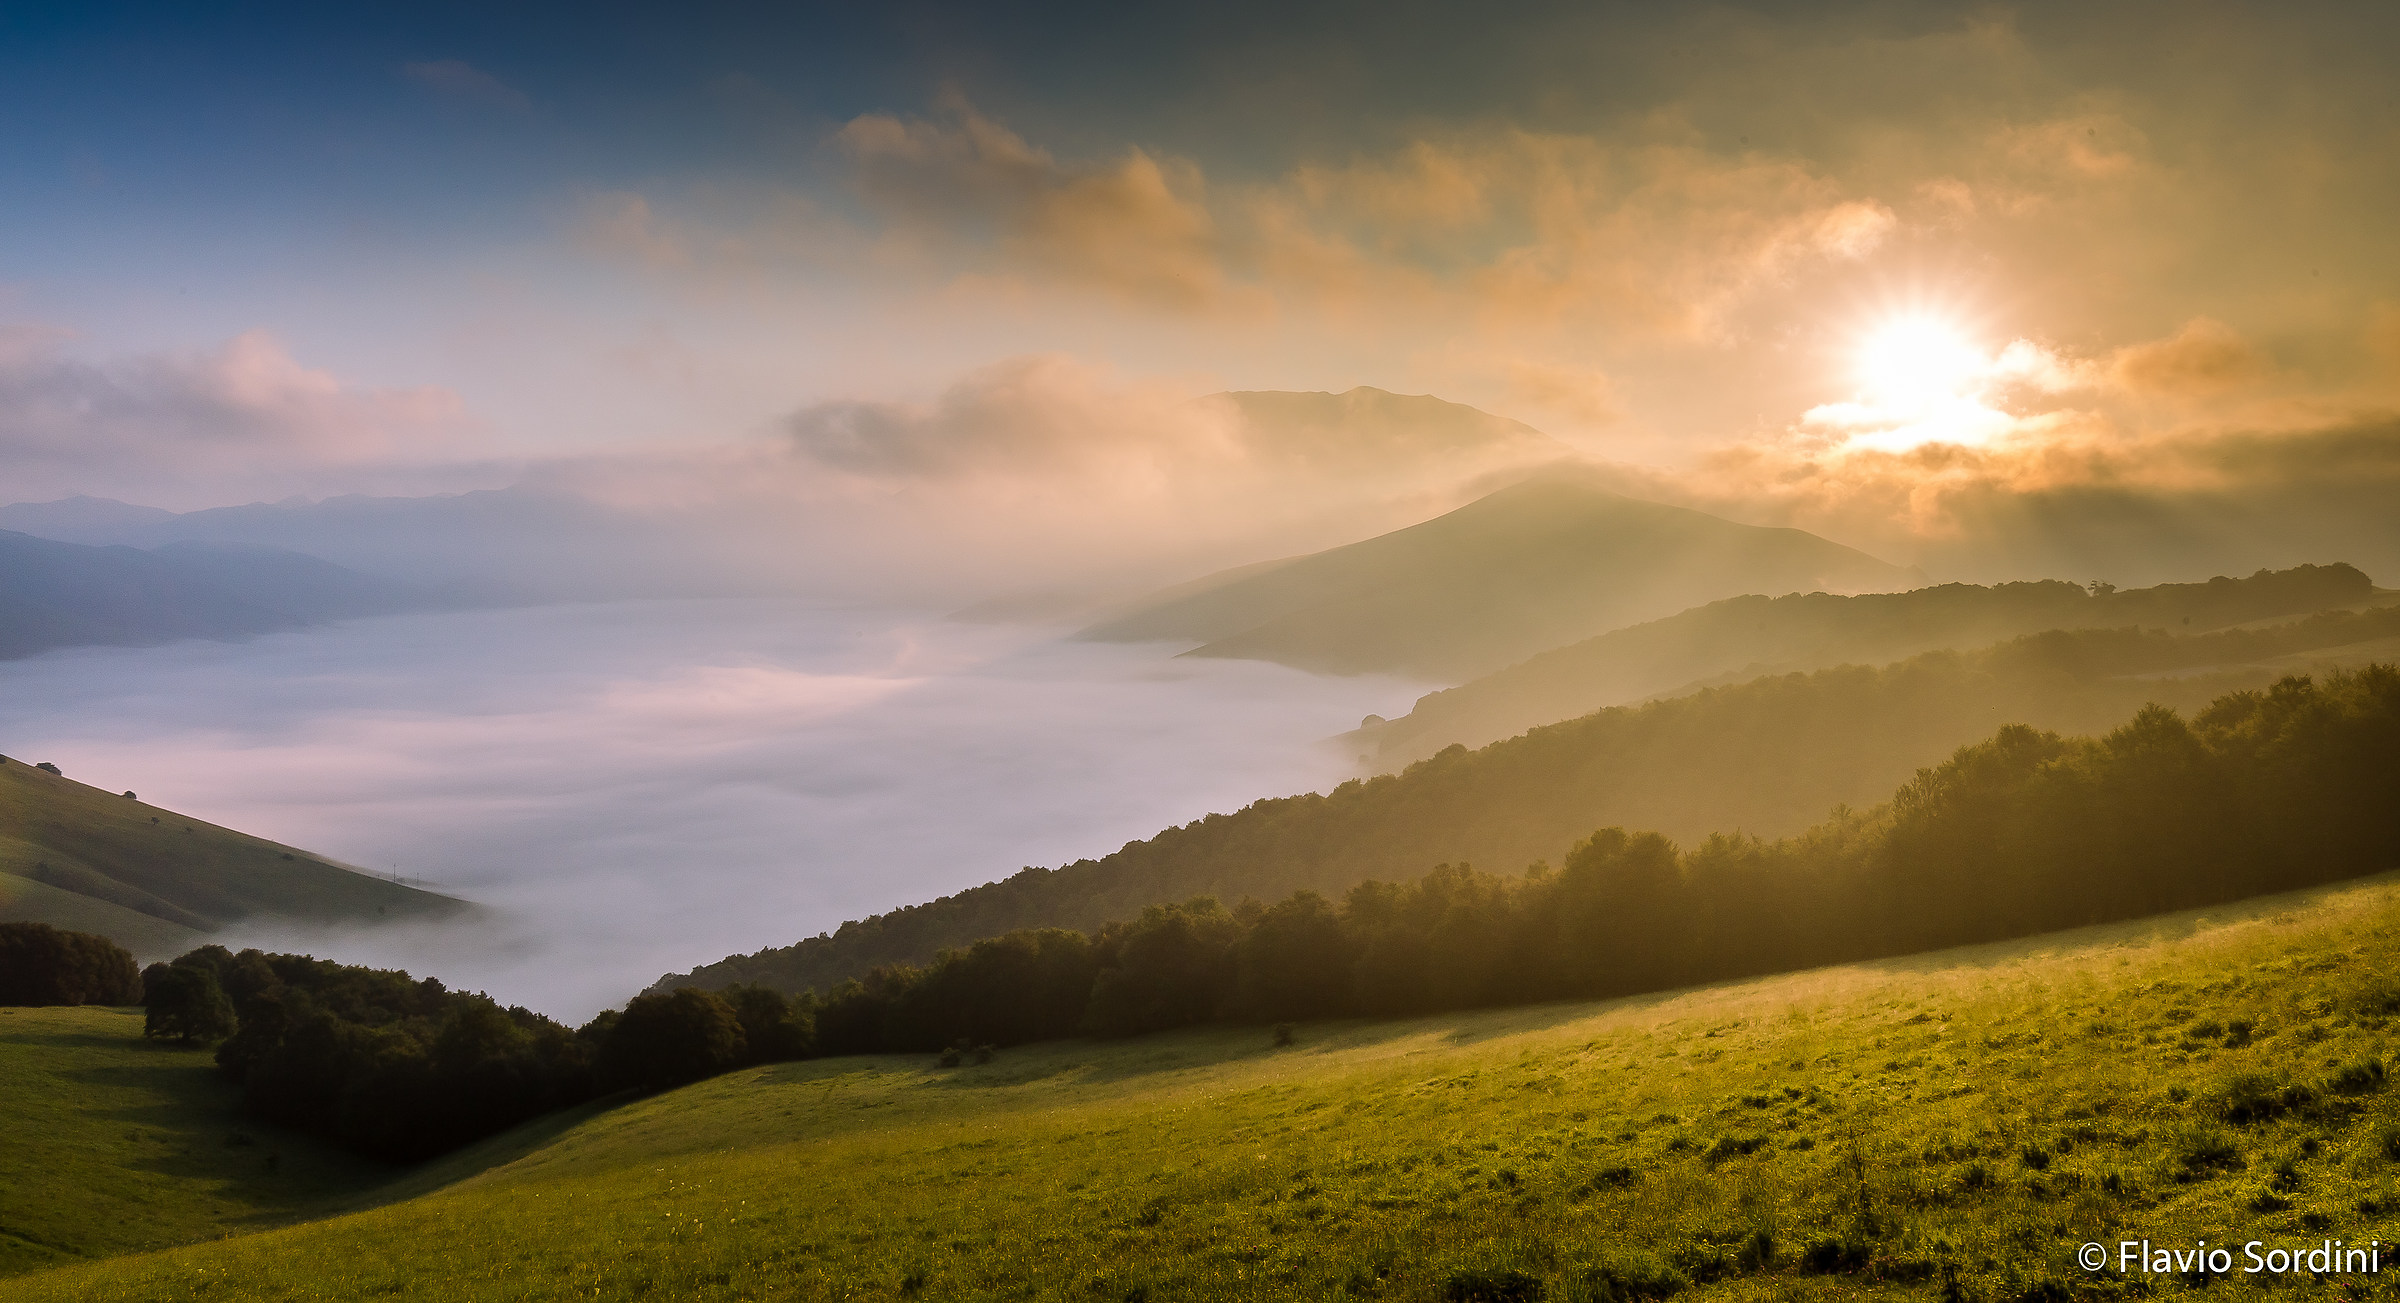 Alba between clouds and fog...